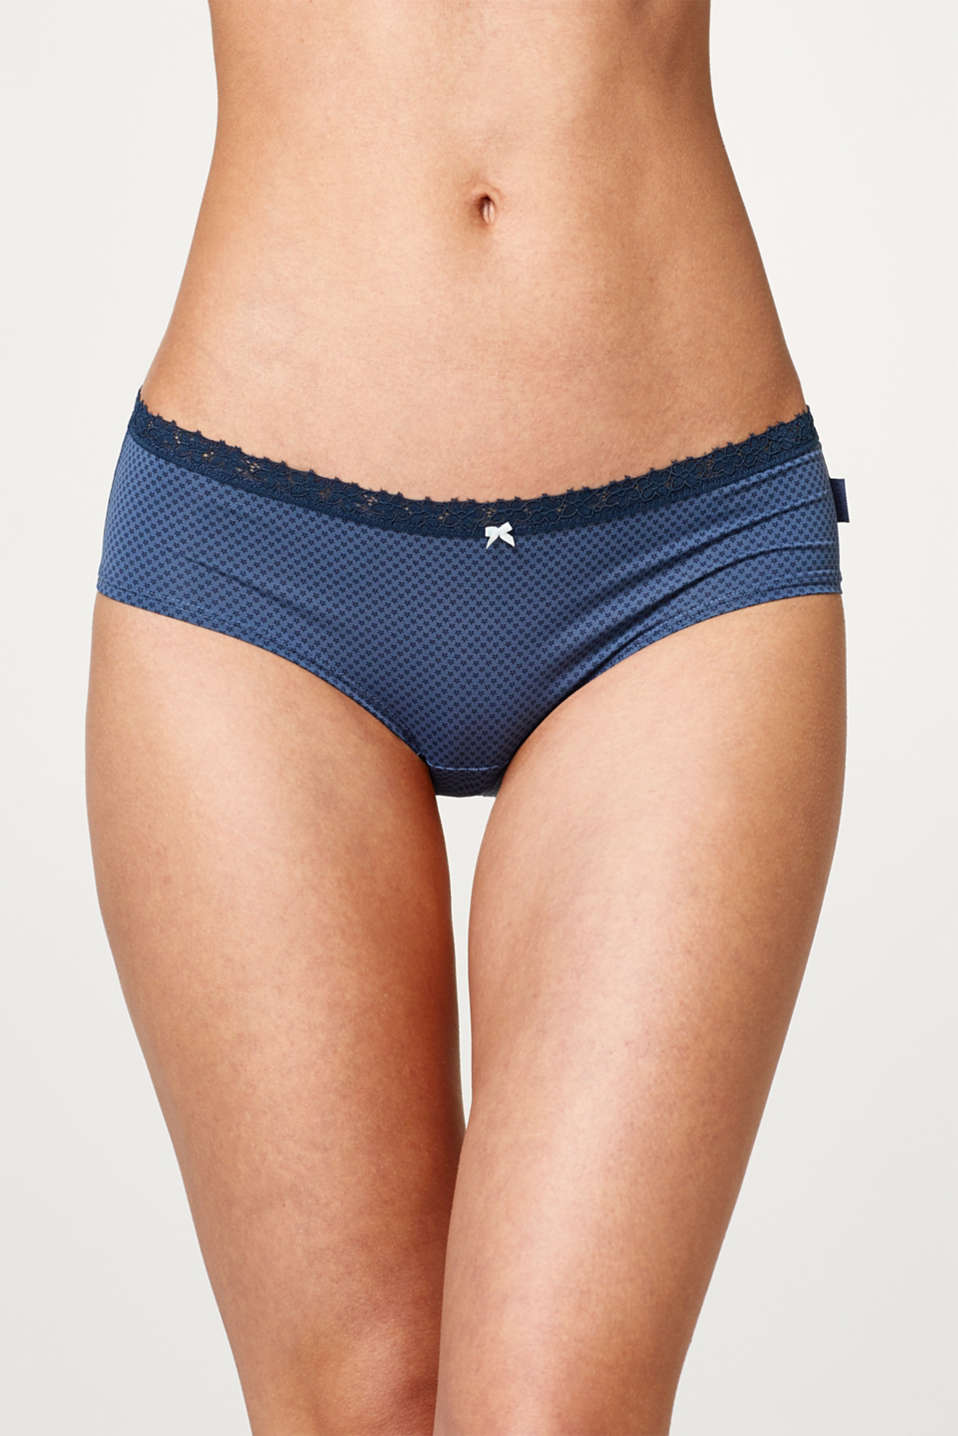 Hipster shorts with a little star print